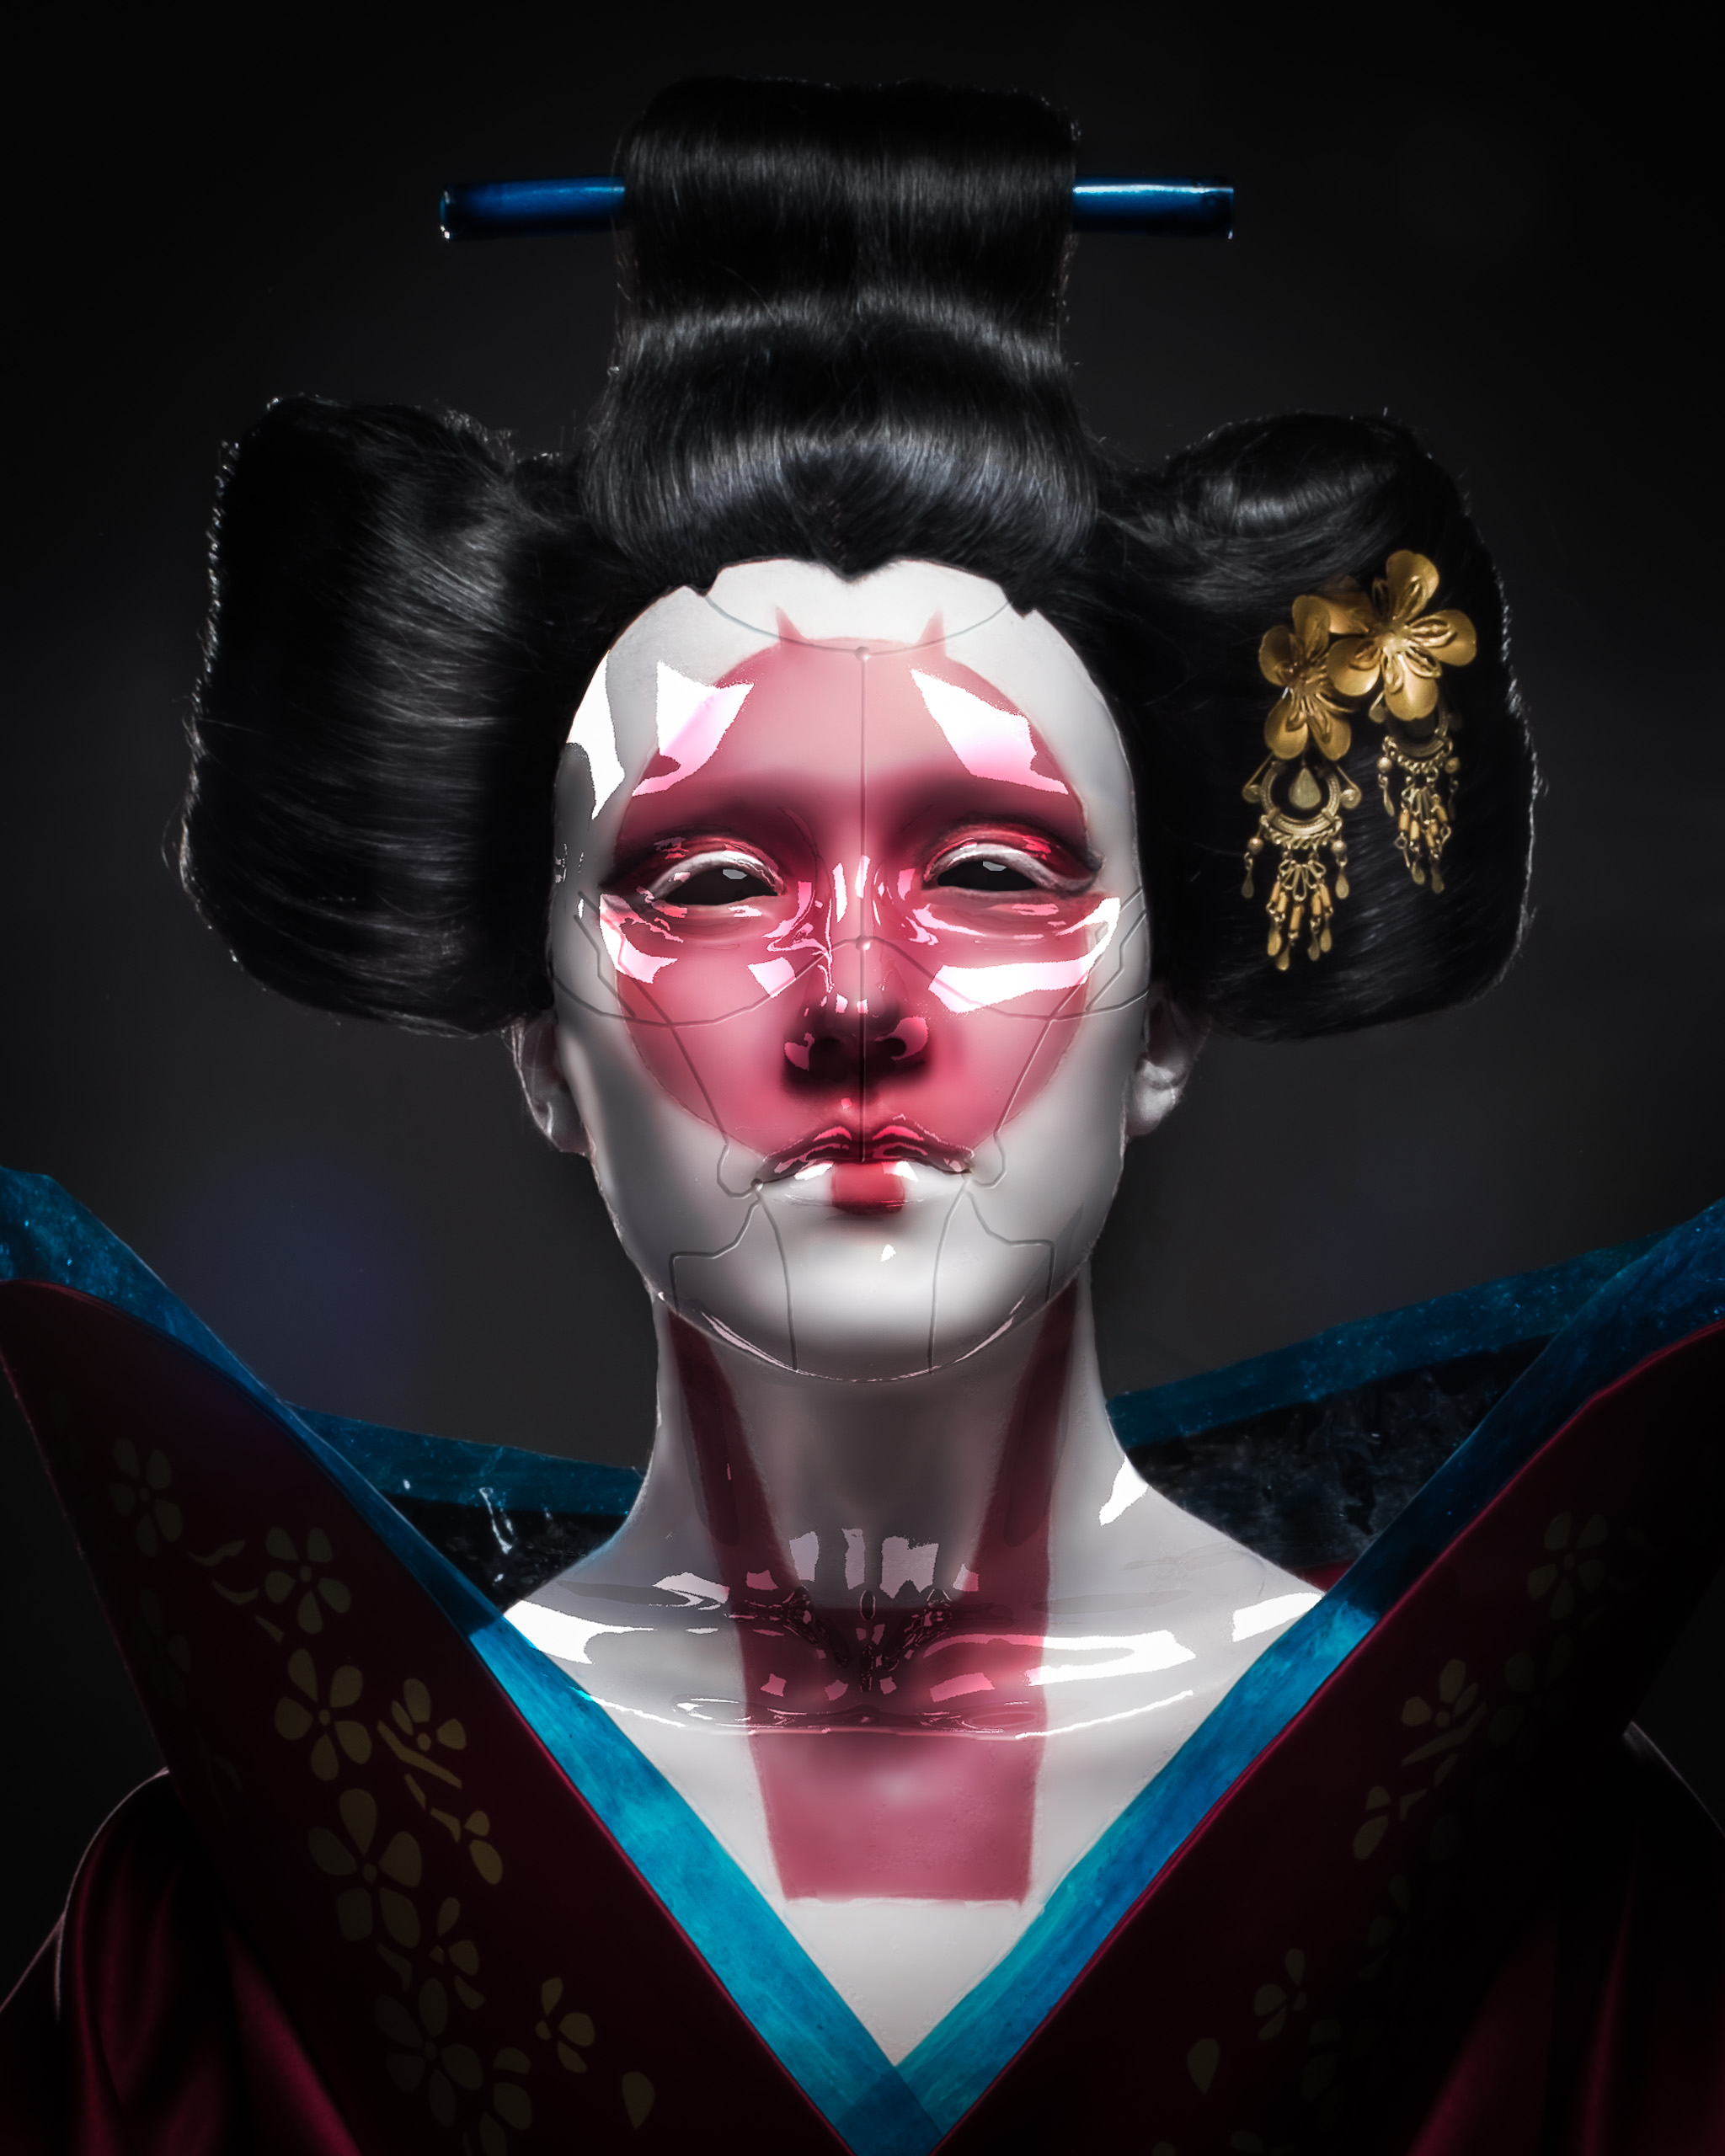 Antti Karppinen Photography Alias Creative Eyes Are The Mirror Of The Soul Ghost In The Shell Robot Geisha Antti Karppinen Photography Alias Creative